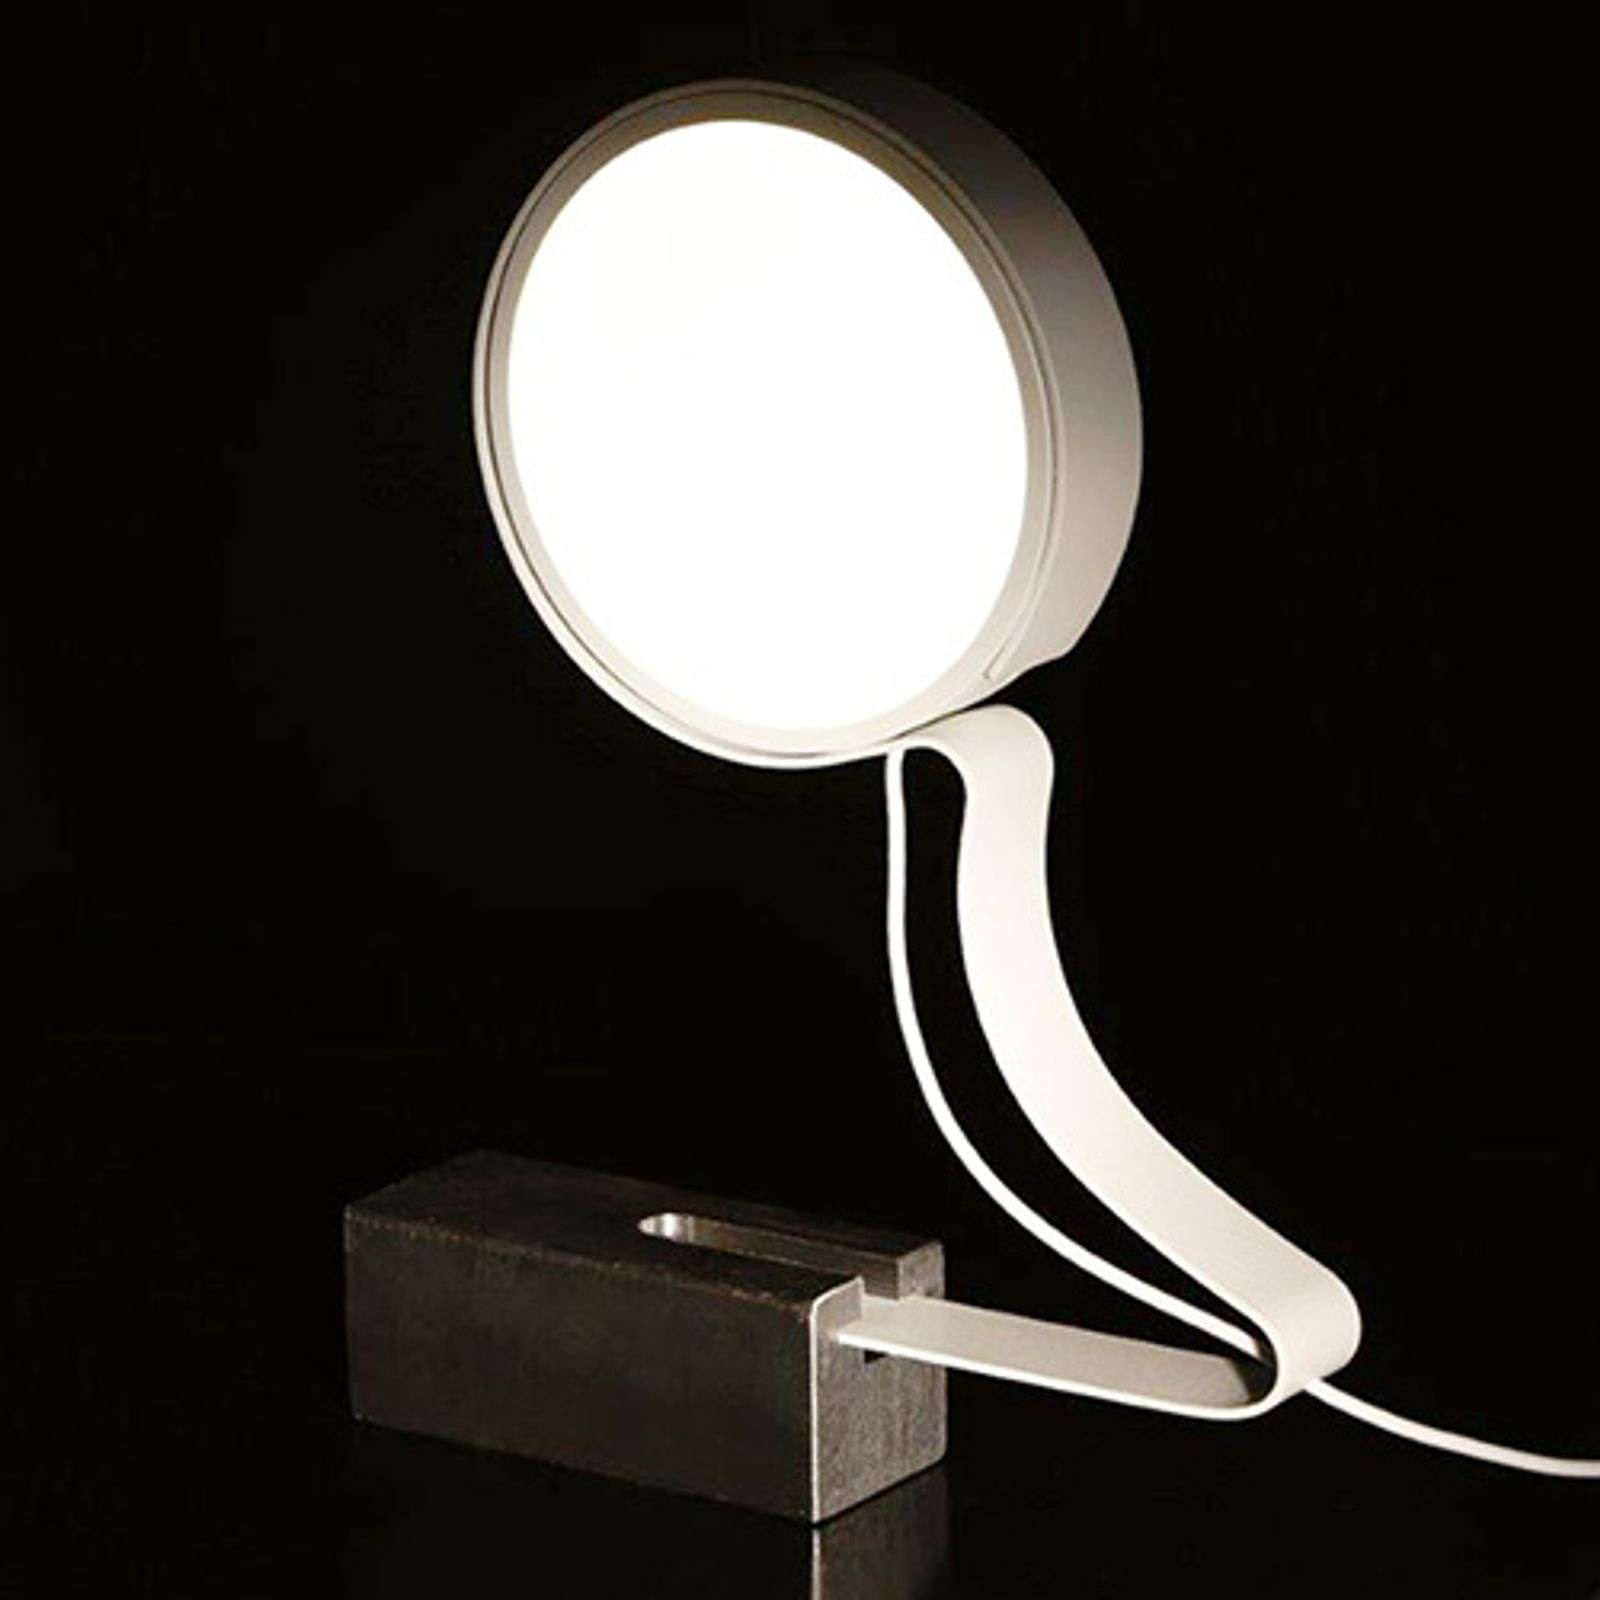 Lámpara de mesa LED DND Profile en blanco